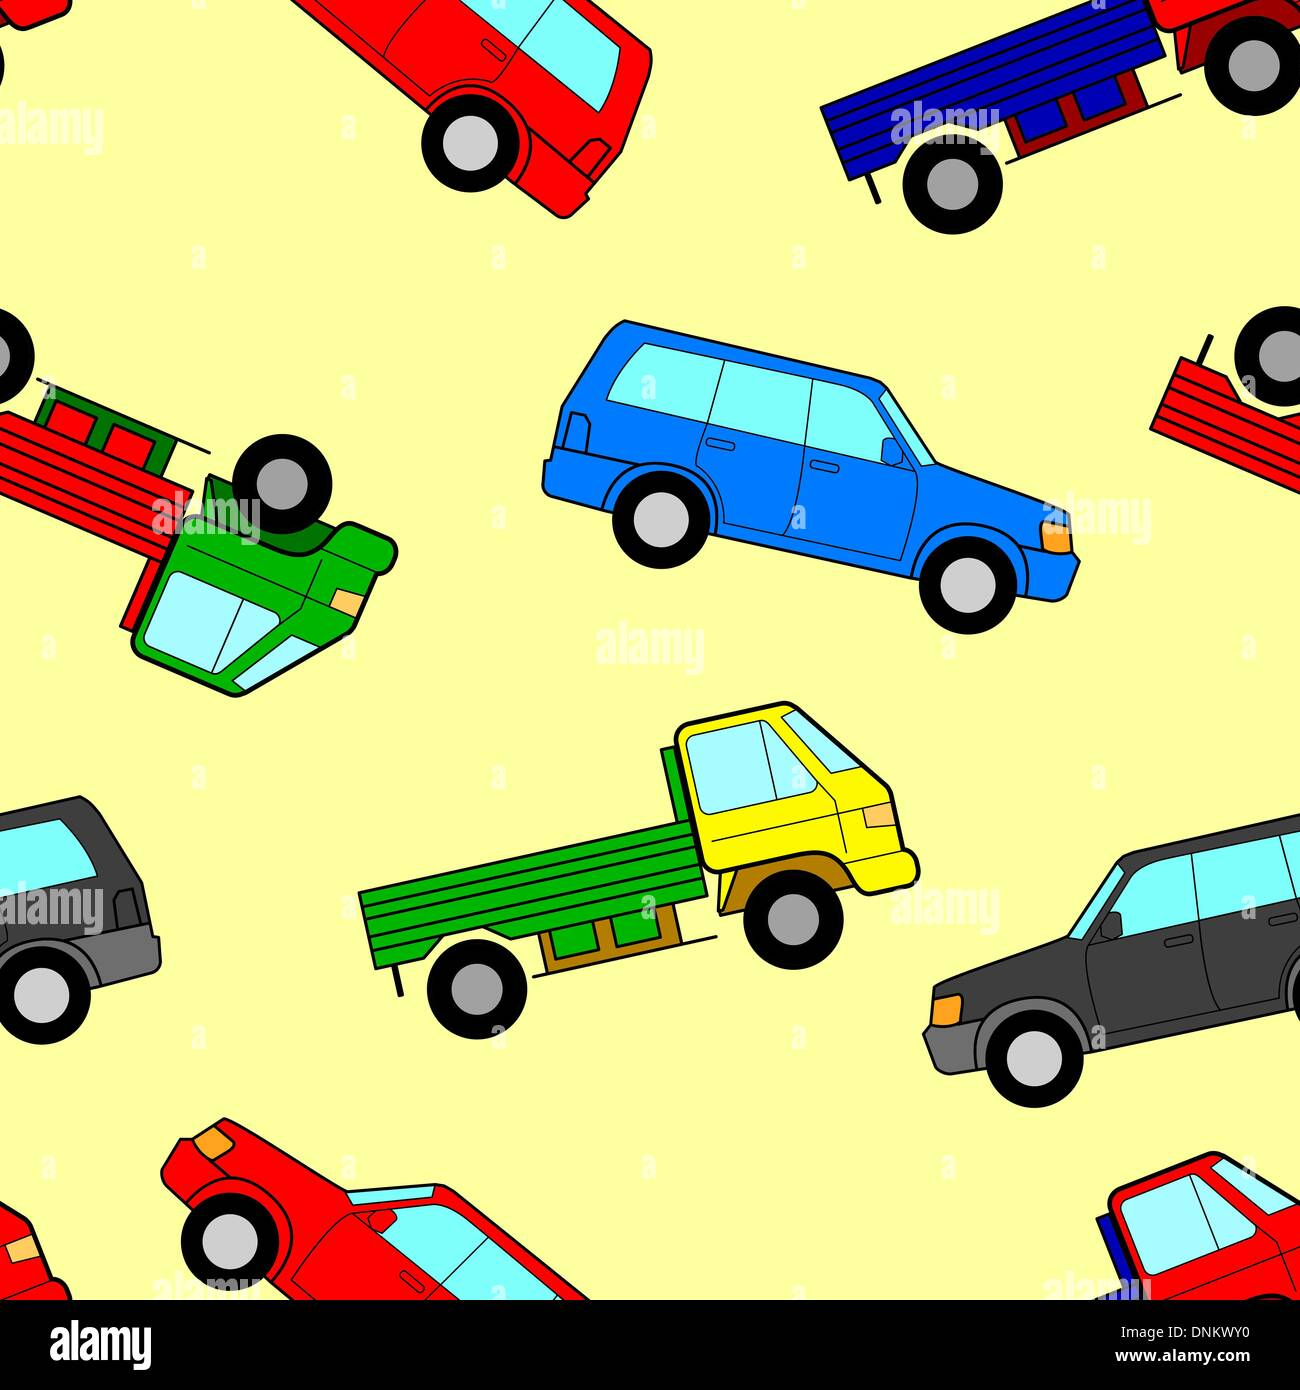 Auto nahtlose Tapete, Vektor-illustration Stockbild